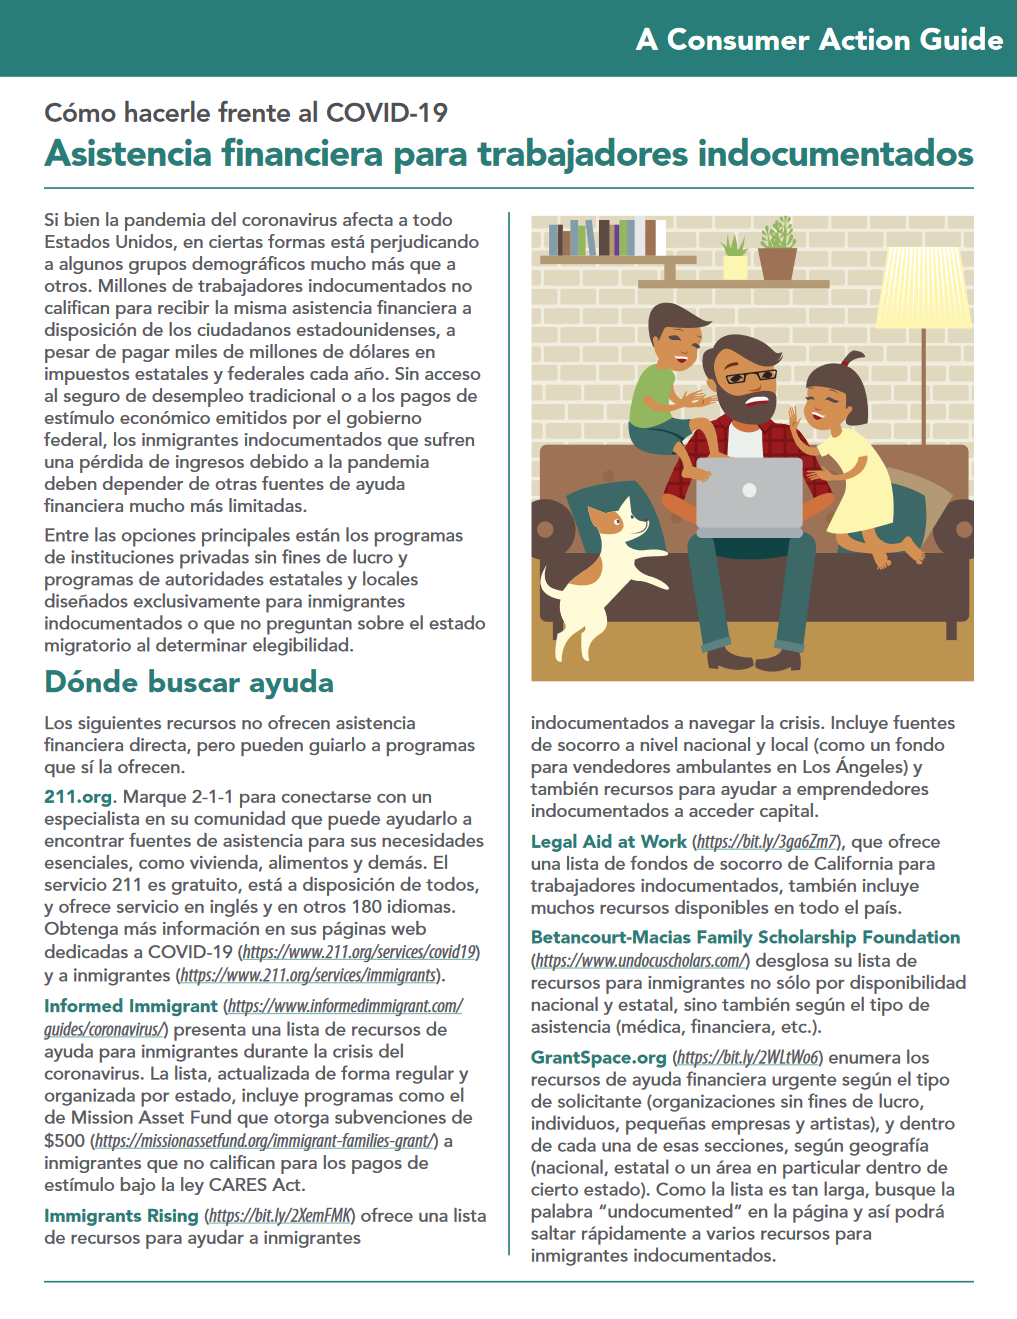 Financial assistance for undocumented workers (Spanish) Cover